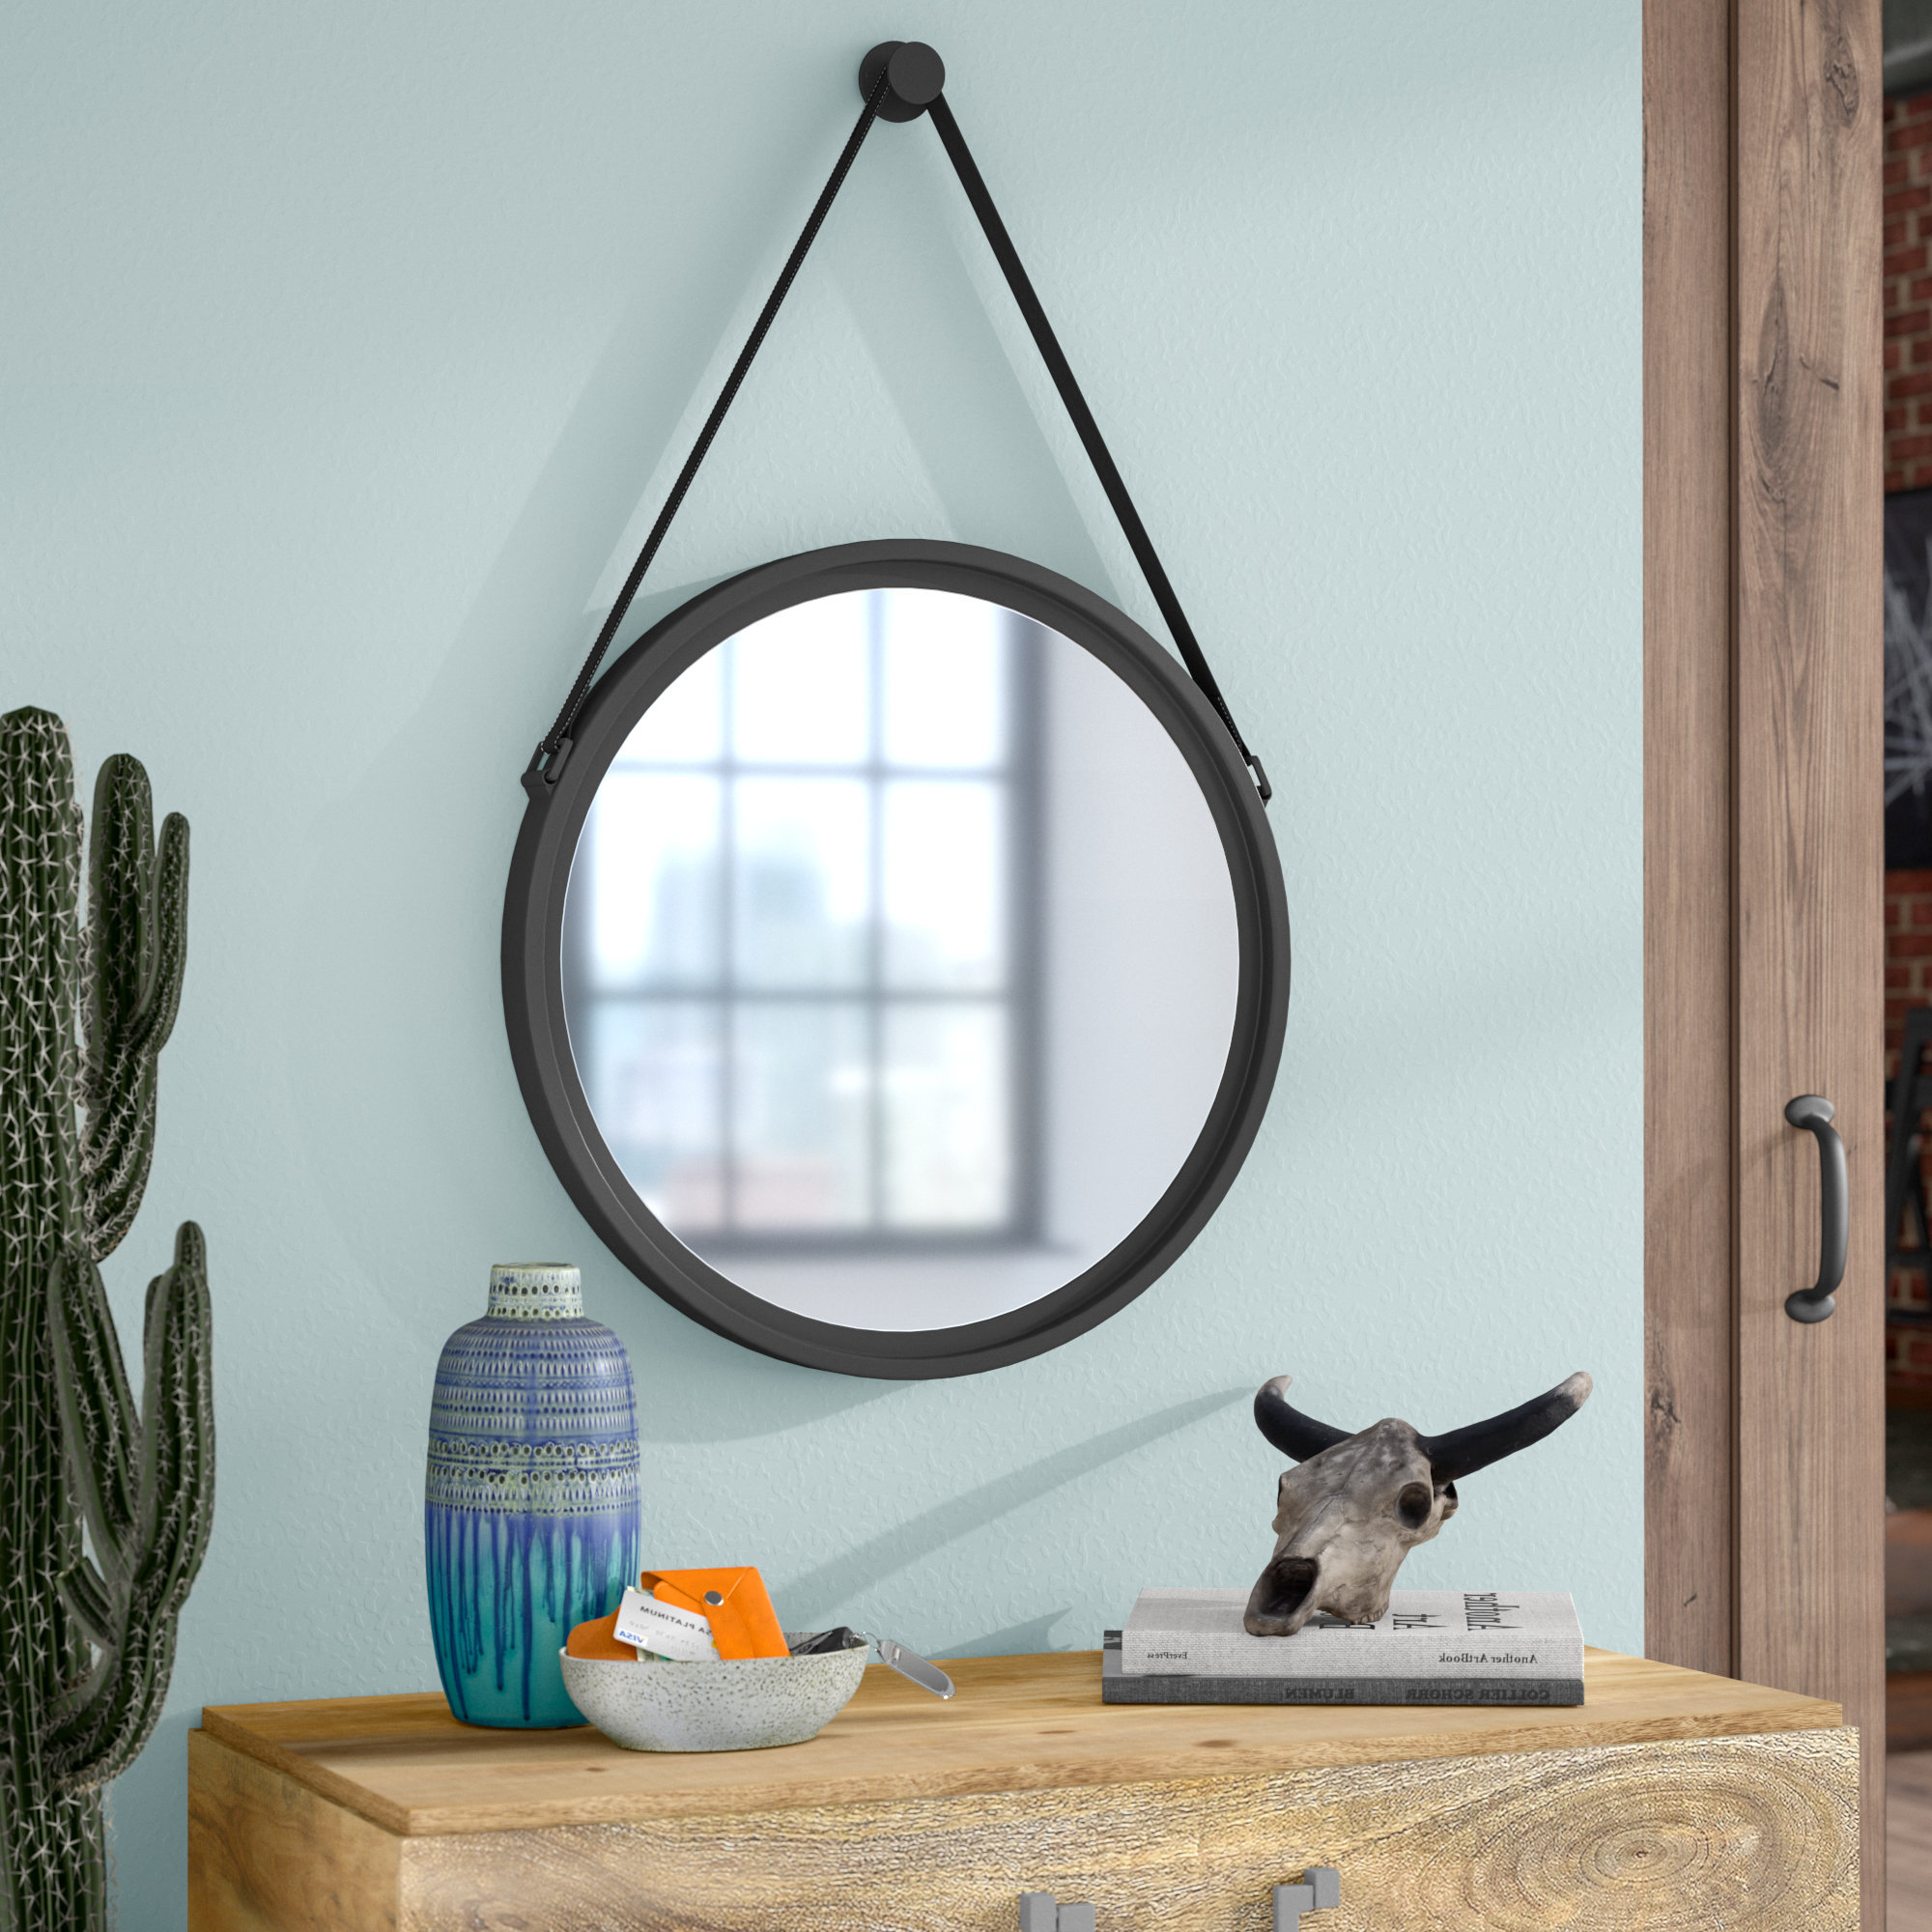 Round Metal Wall Mirrors Intended For 2019 Round Metal Wall Mirror (View 2 of 20)